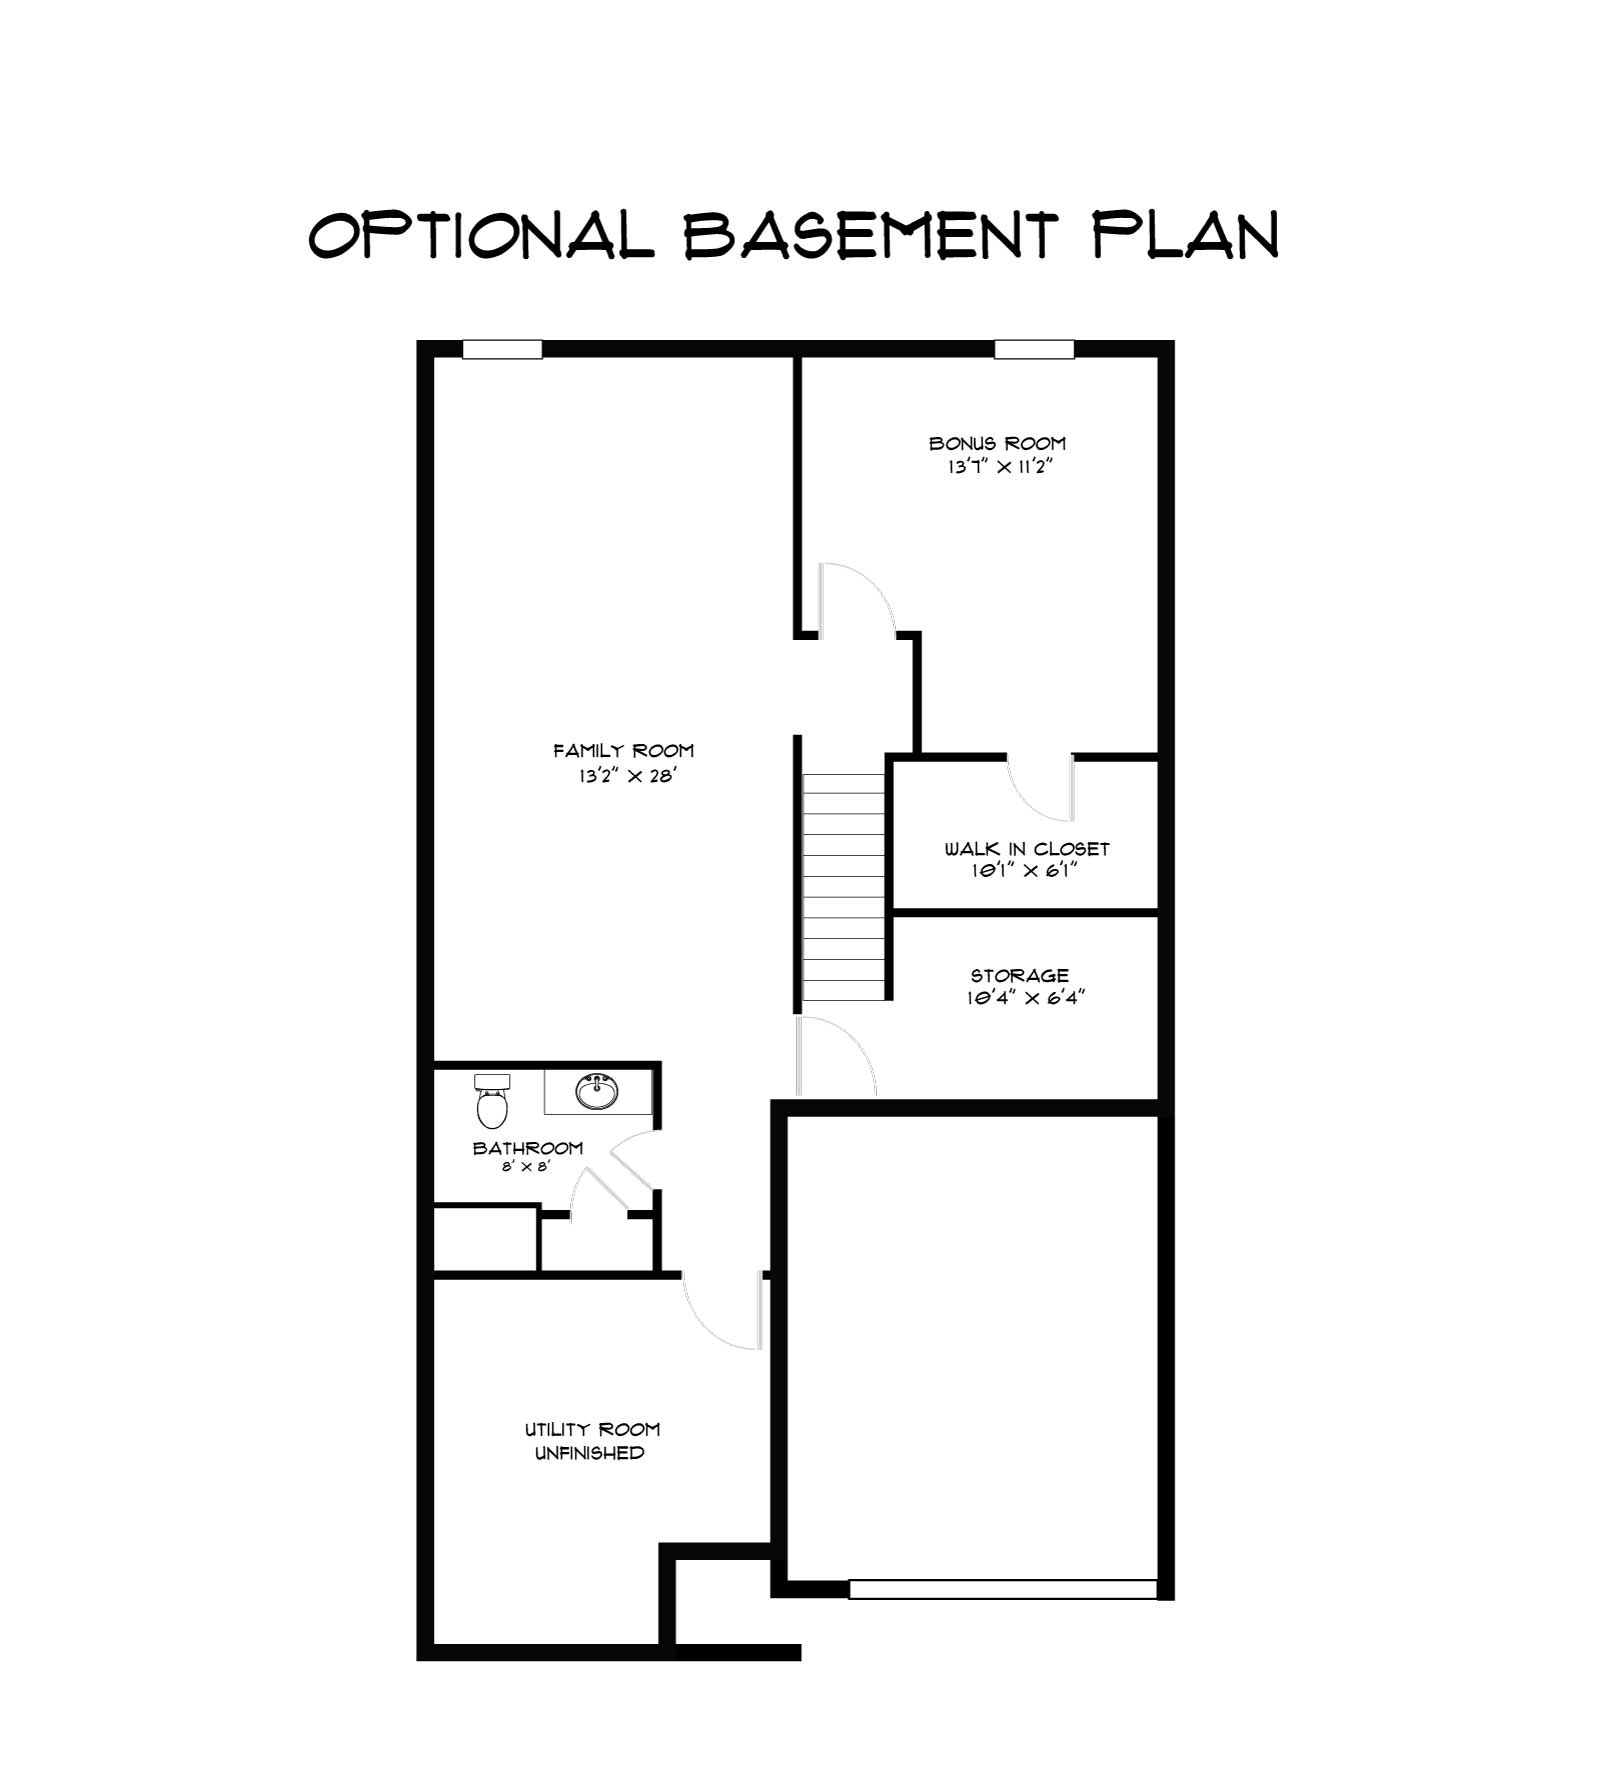 bungalow_floor_plan